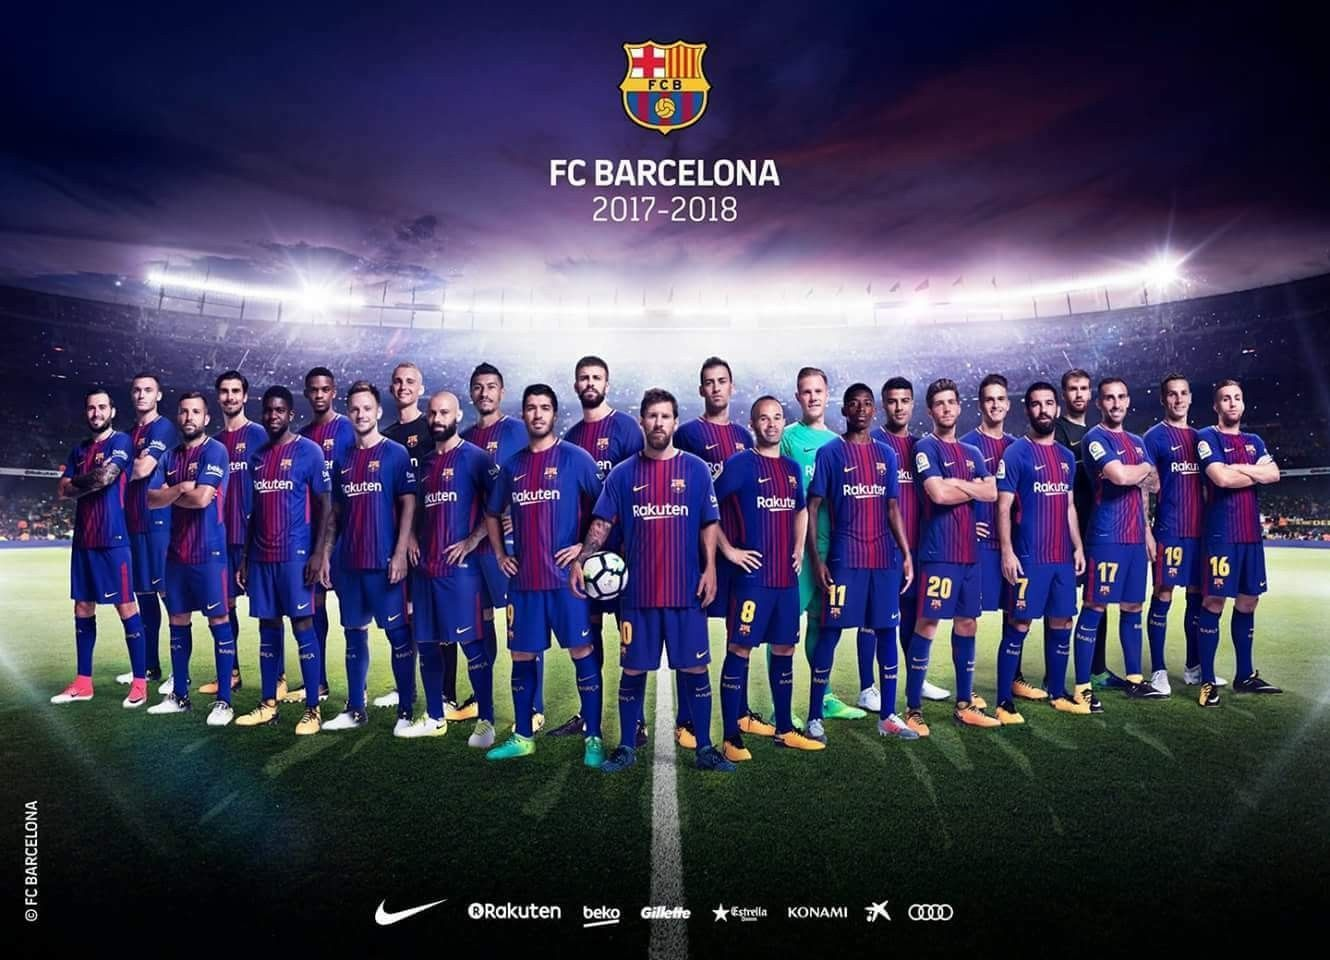 Fcb Wallpapers Top Free Fcb Backgrounds Wallpaperaccess